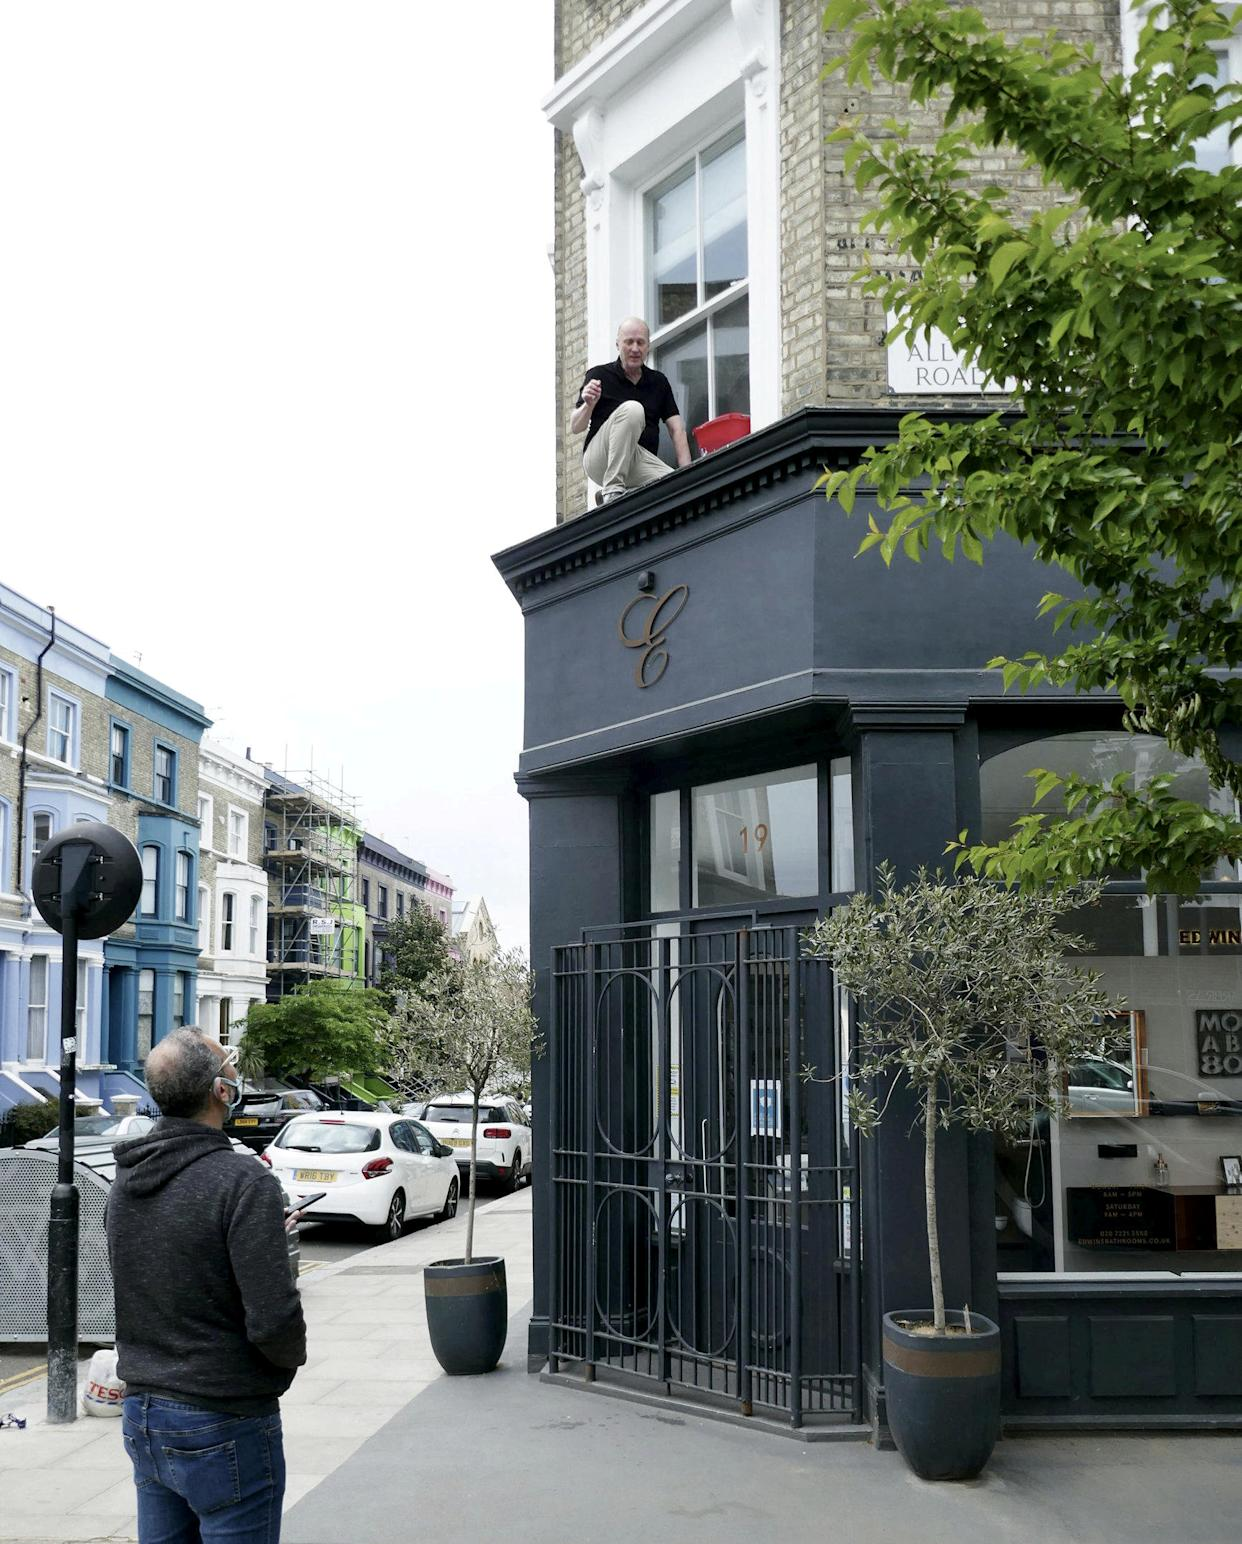 The hapless celebrity was photographed stuck on a ledge pleading for help from passer-bys. (Duncan Cumming/SWNS)